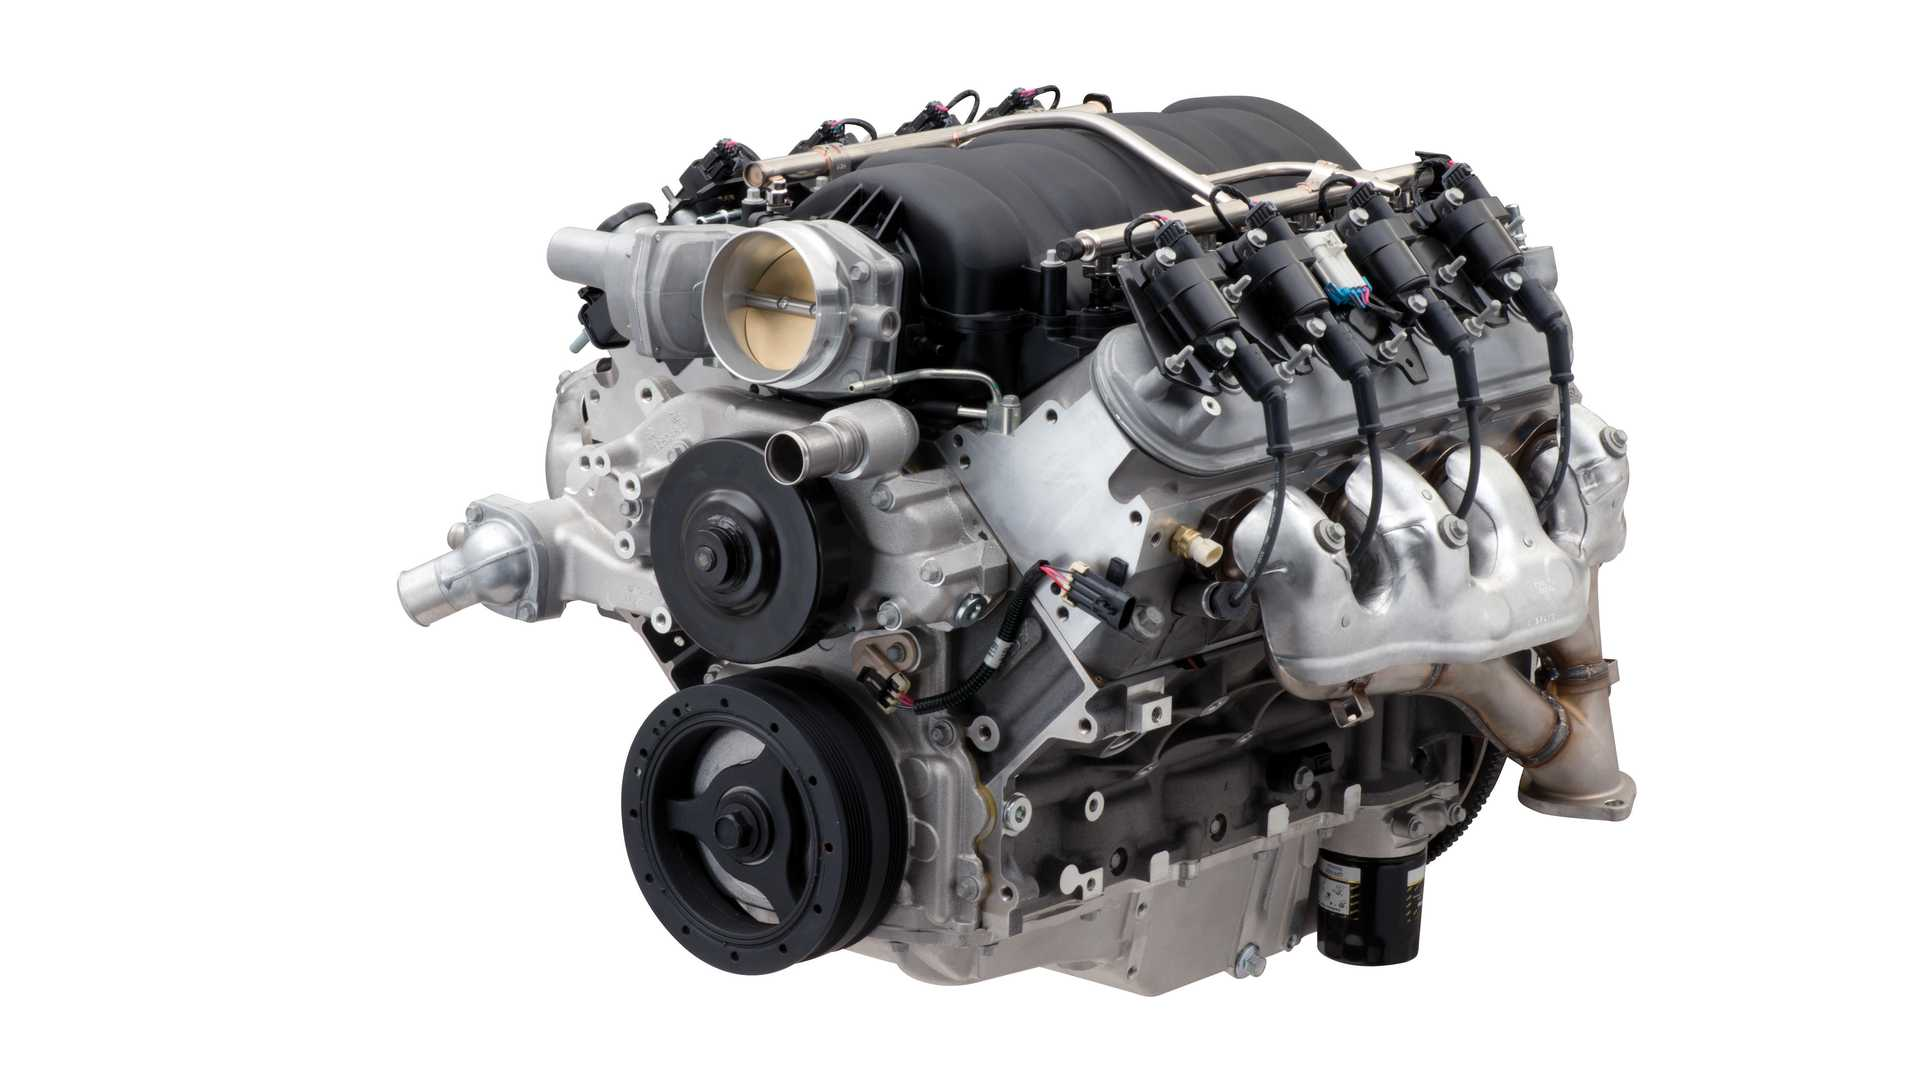 Chevy Unveils New LS427/570 Crate Engine